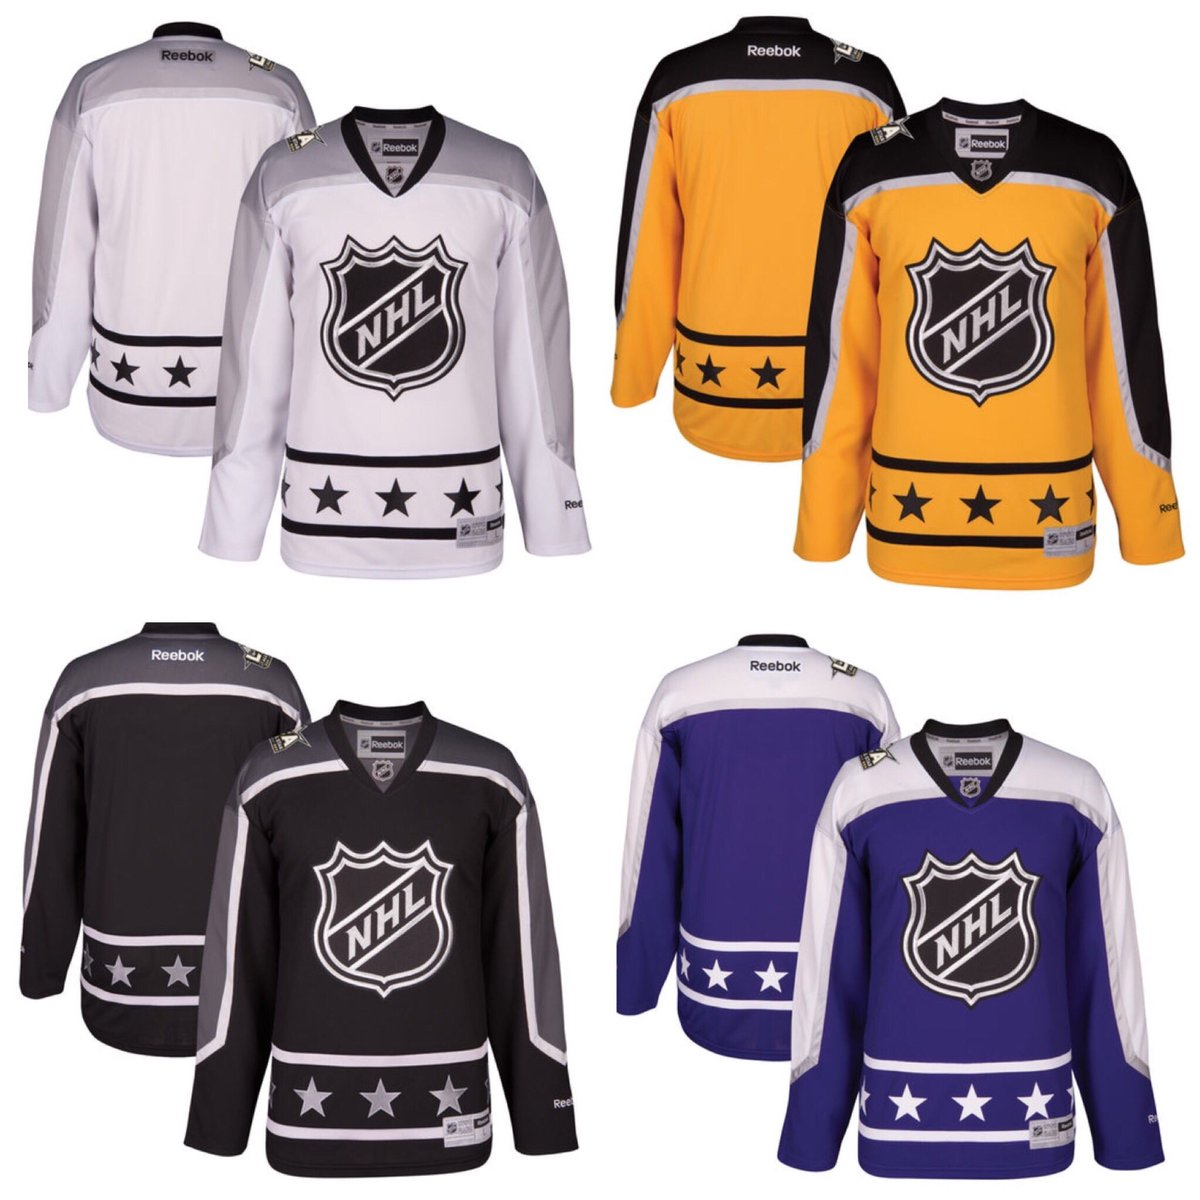 Thoughts on the nhl all-star game jerseys  the 2017 nhl all-star game is  jan. 29 at the staples center in los angeles. 872cf1475c0